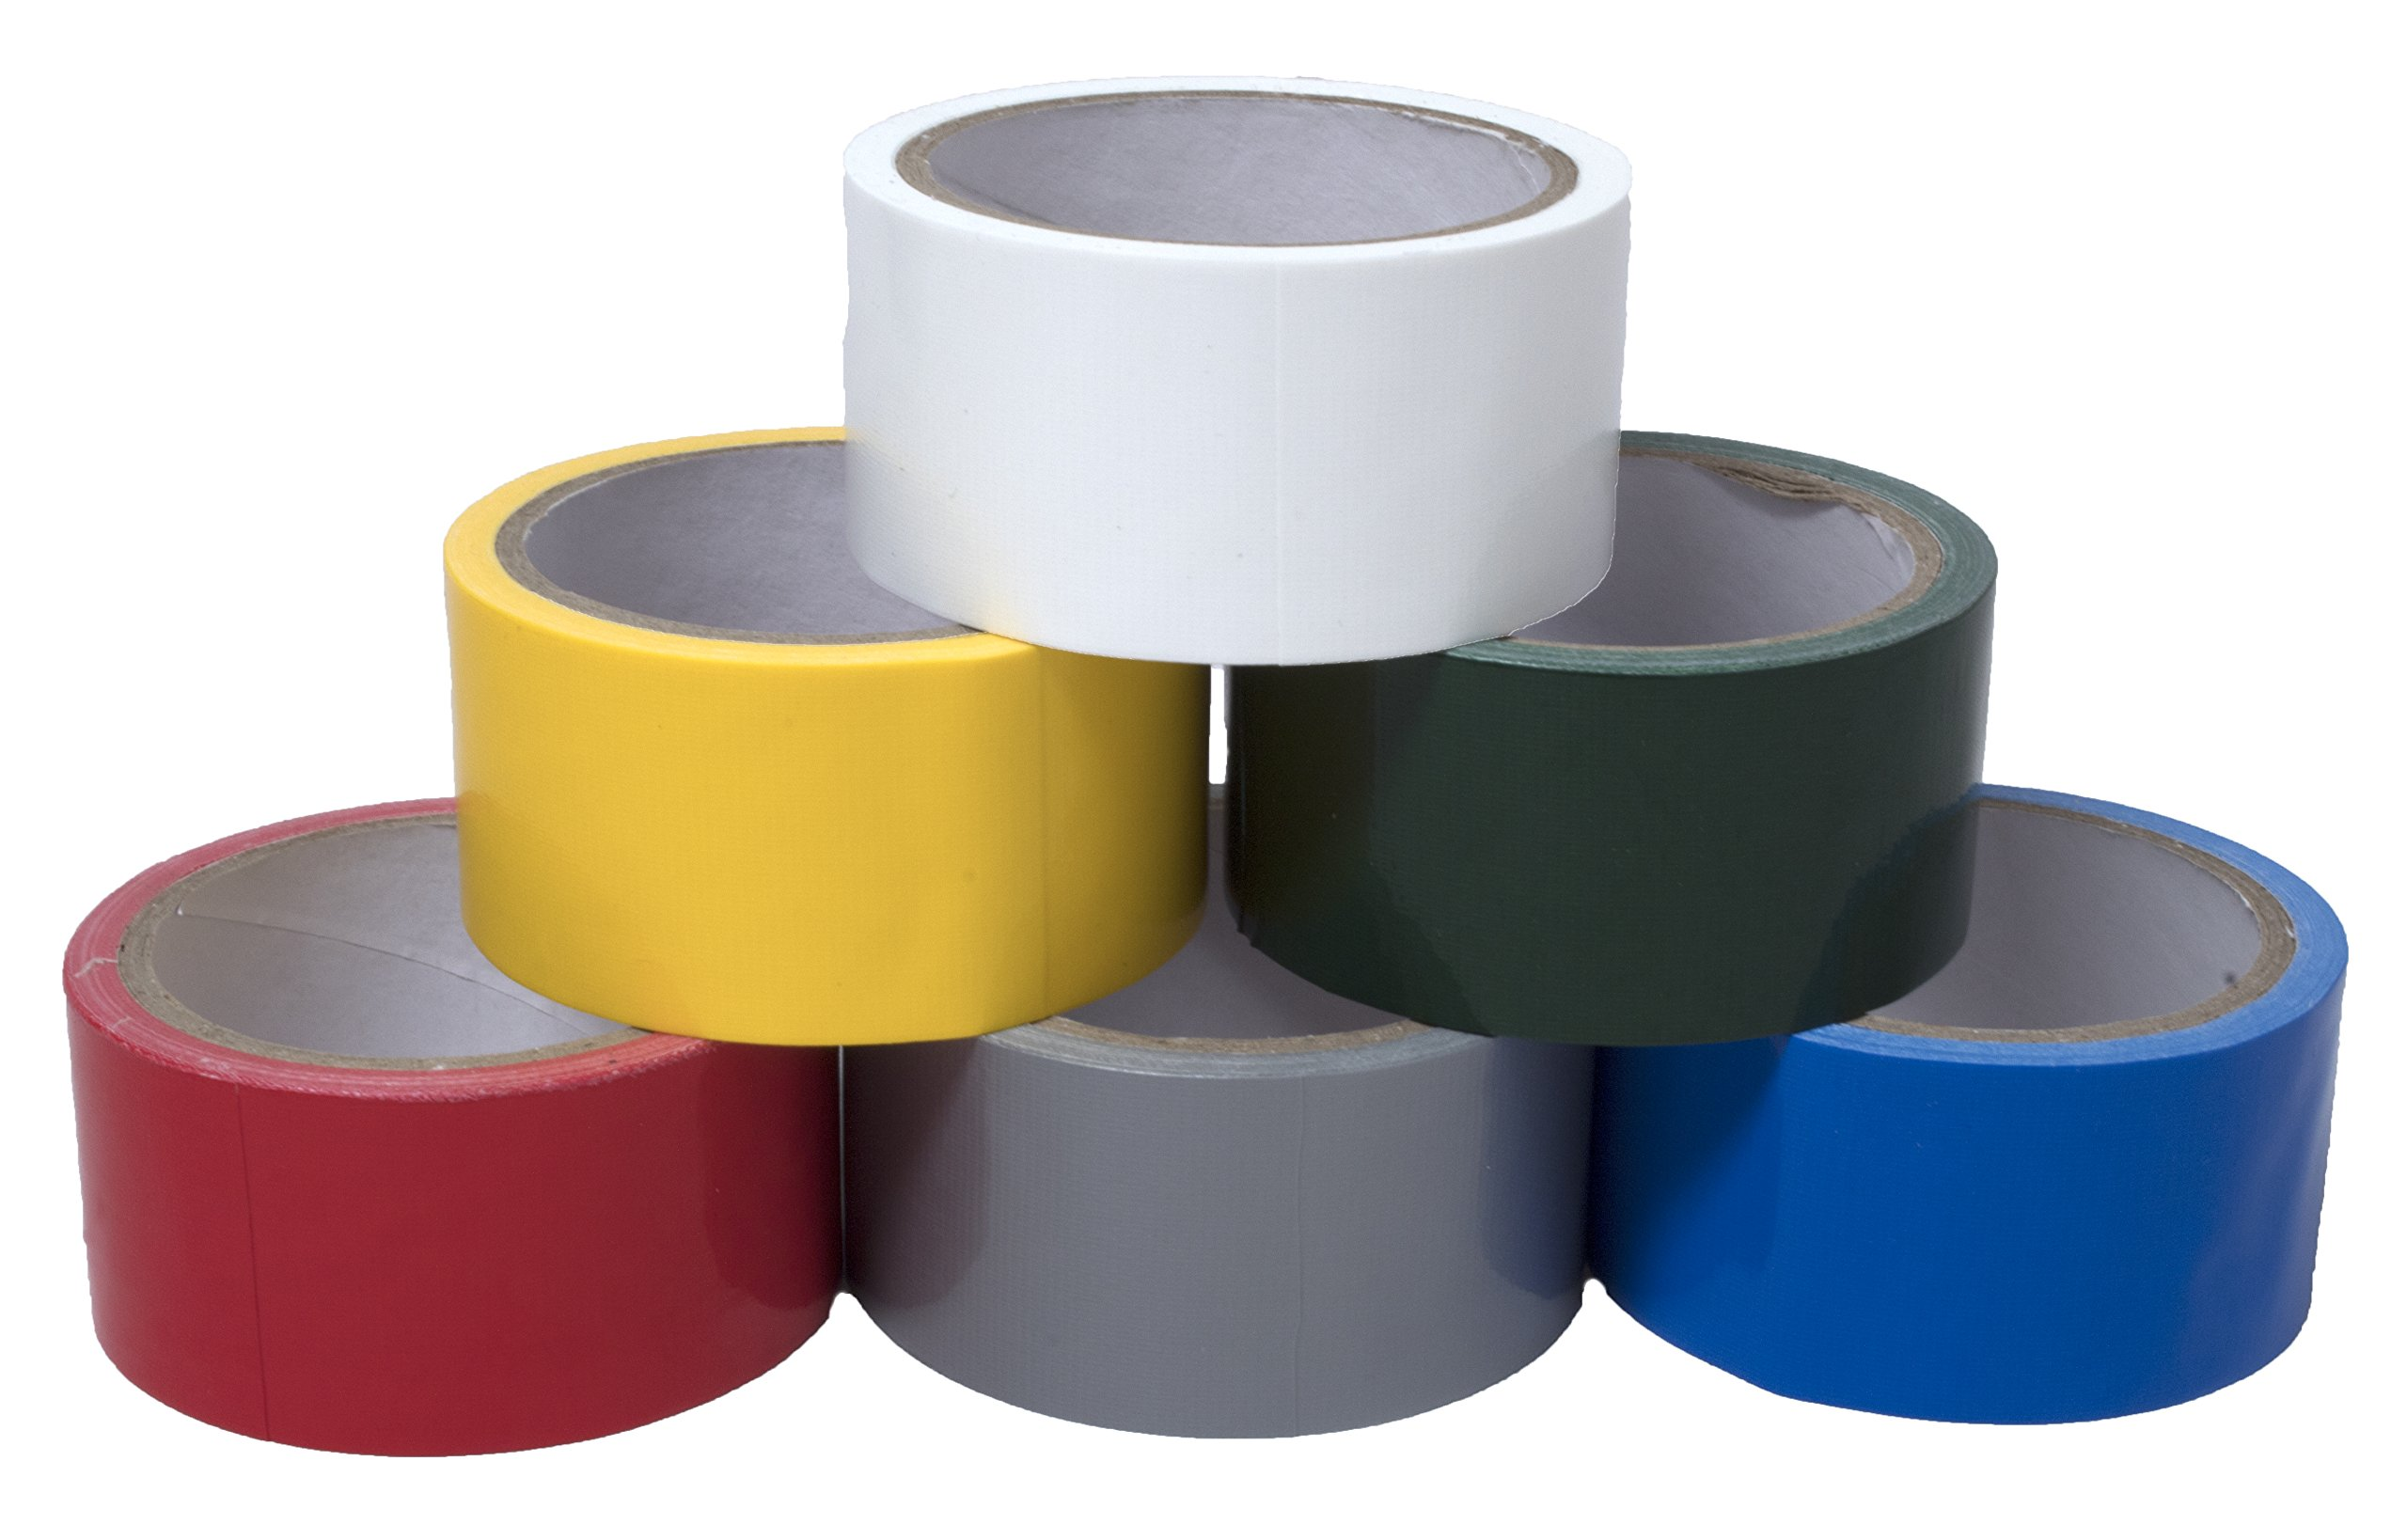 6 Pack Duct Tape Red White Blue Grey Yellow Green Multipurpose Tape Crafts Repairs Organization Decorating 1.8'' x 10 Yards per Roll